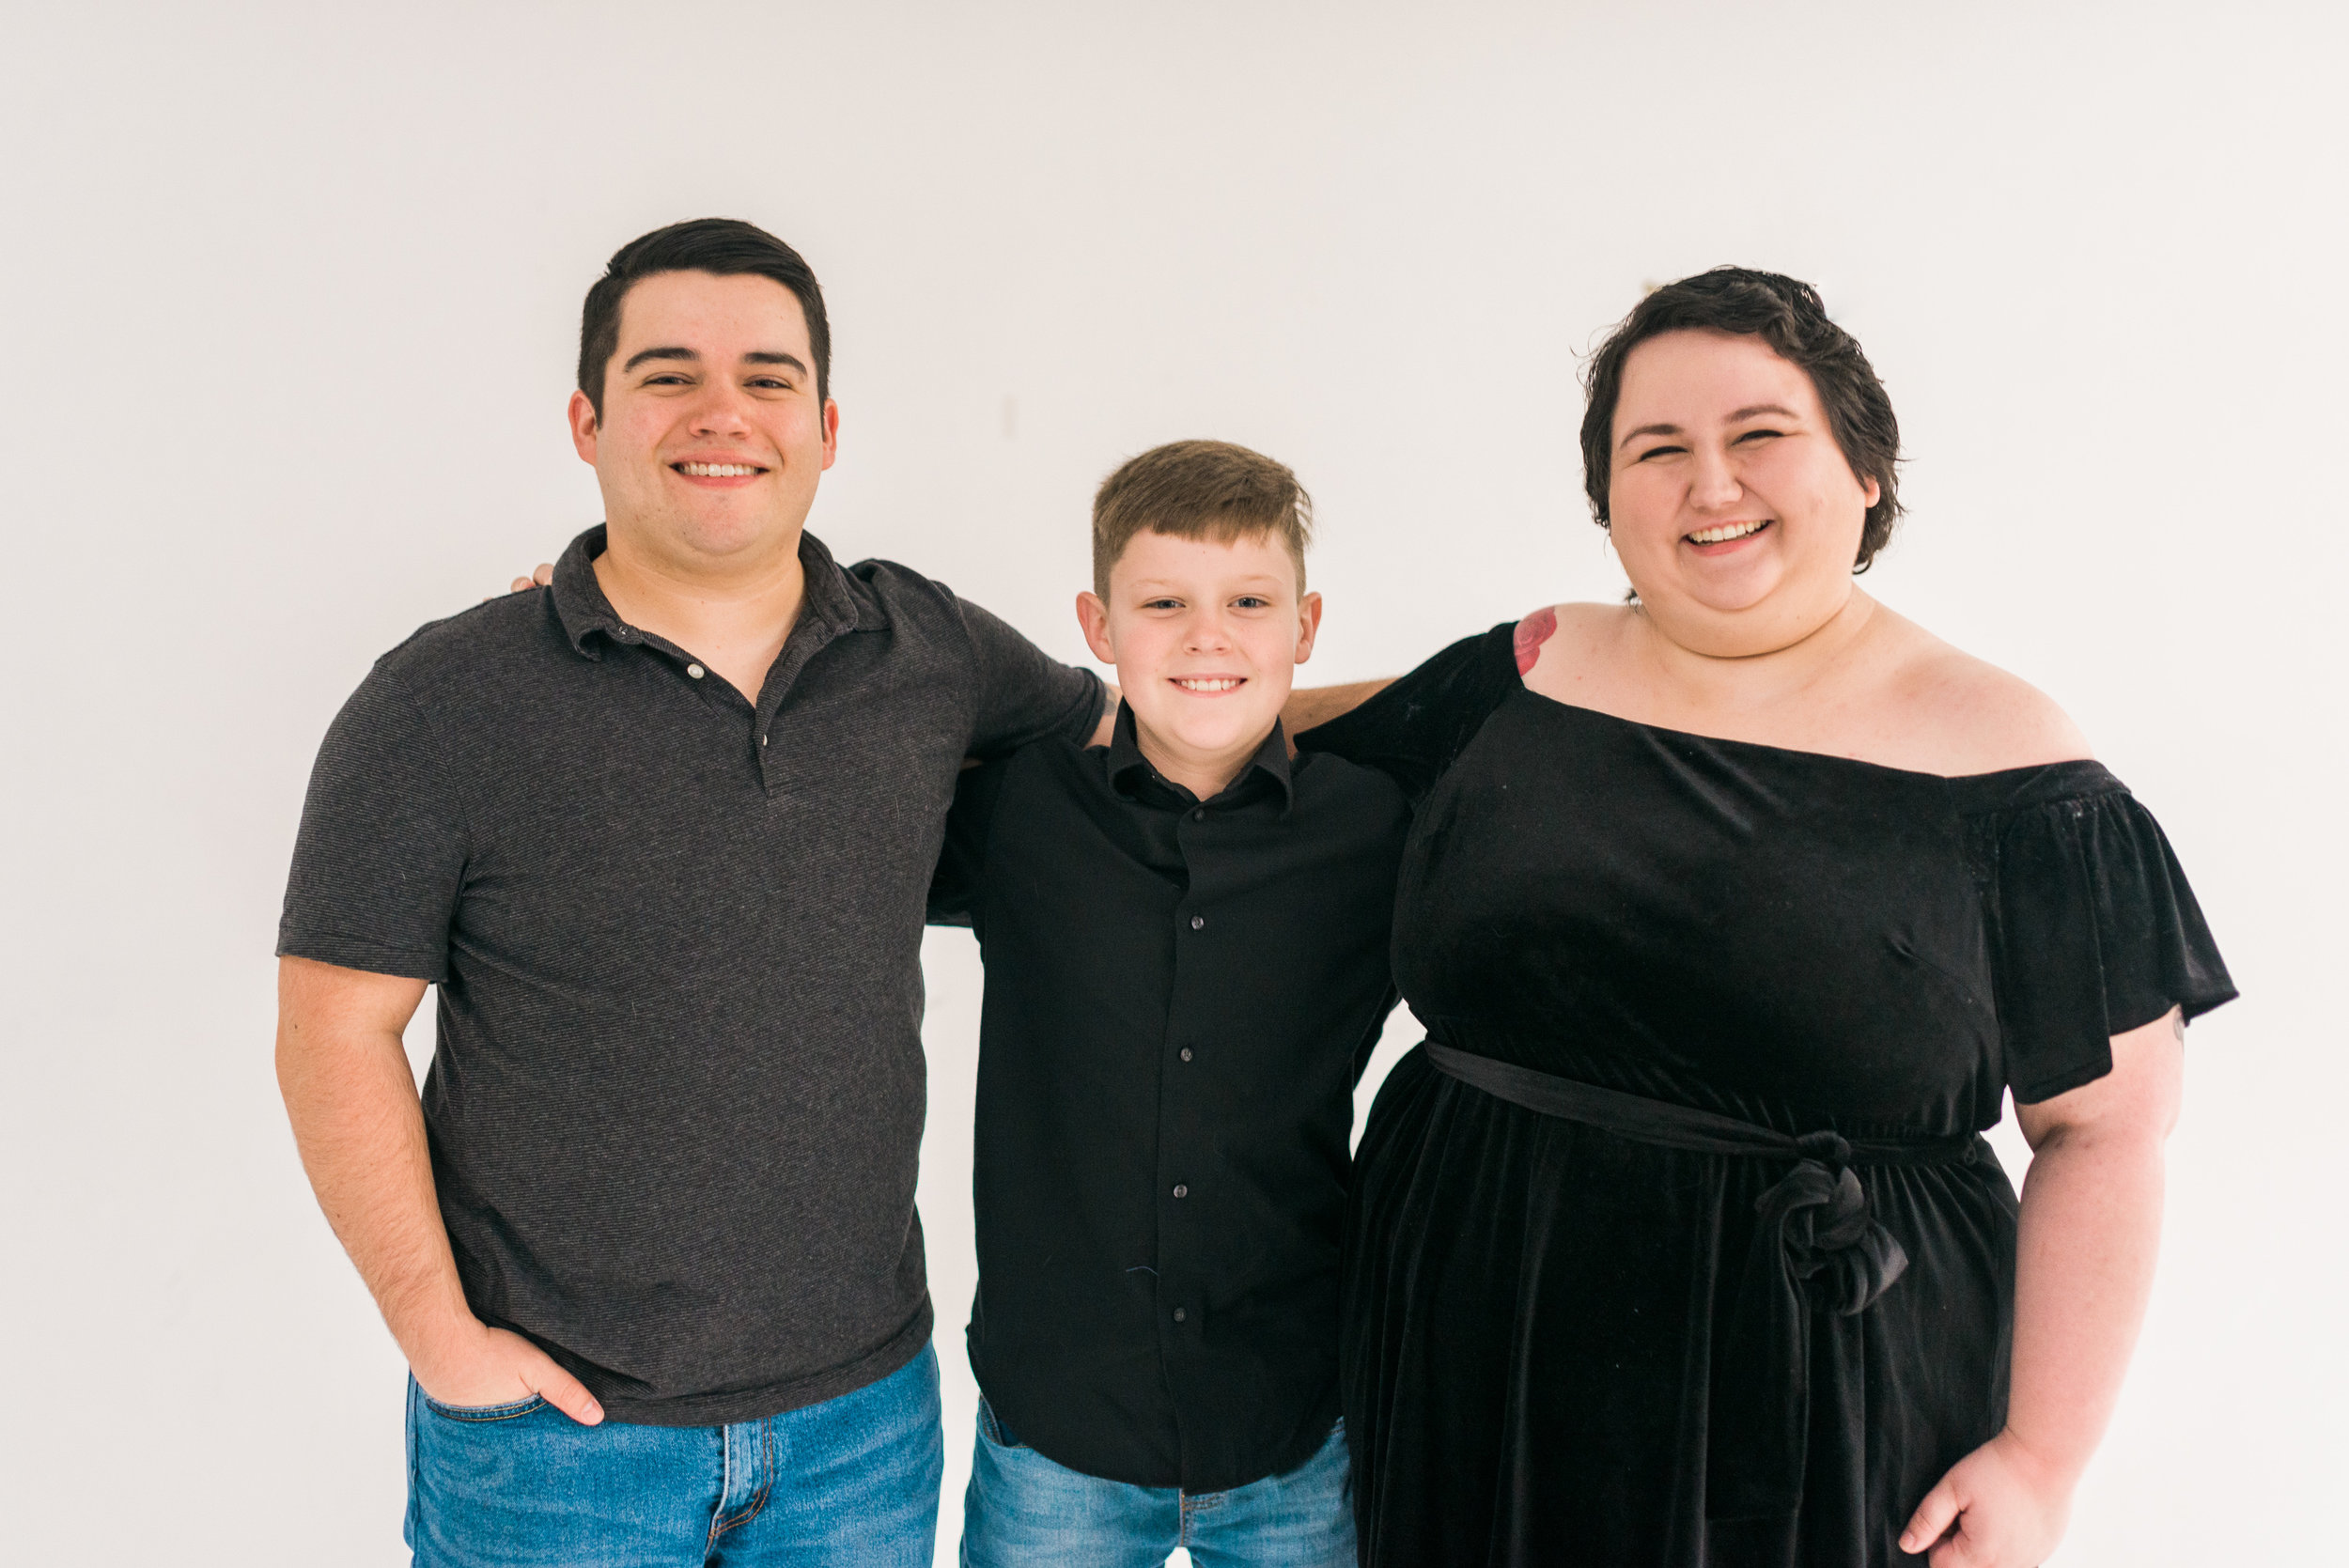 WhiteBackground_HoustonFamilyPortraitPhotographer_ModernStudio_FamilyPhotos14.jpg